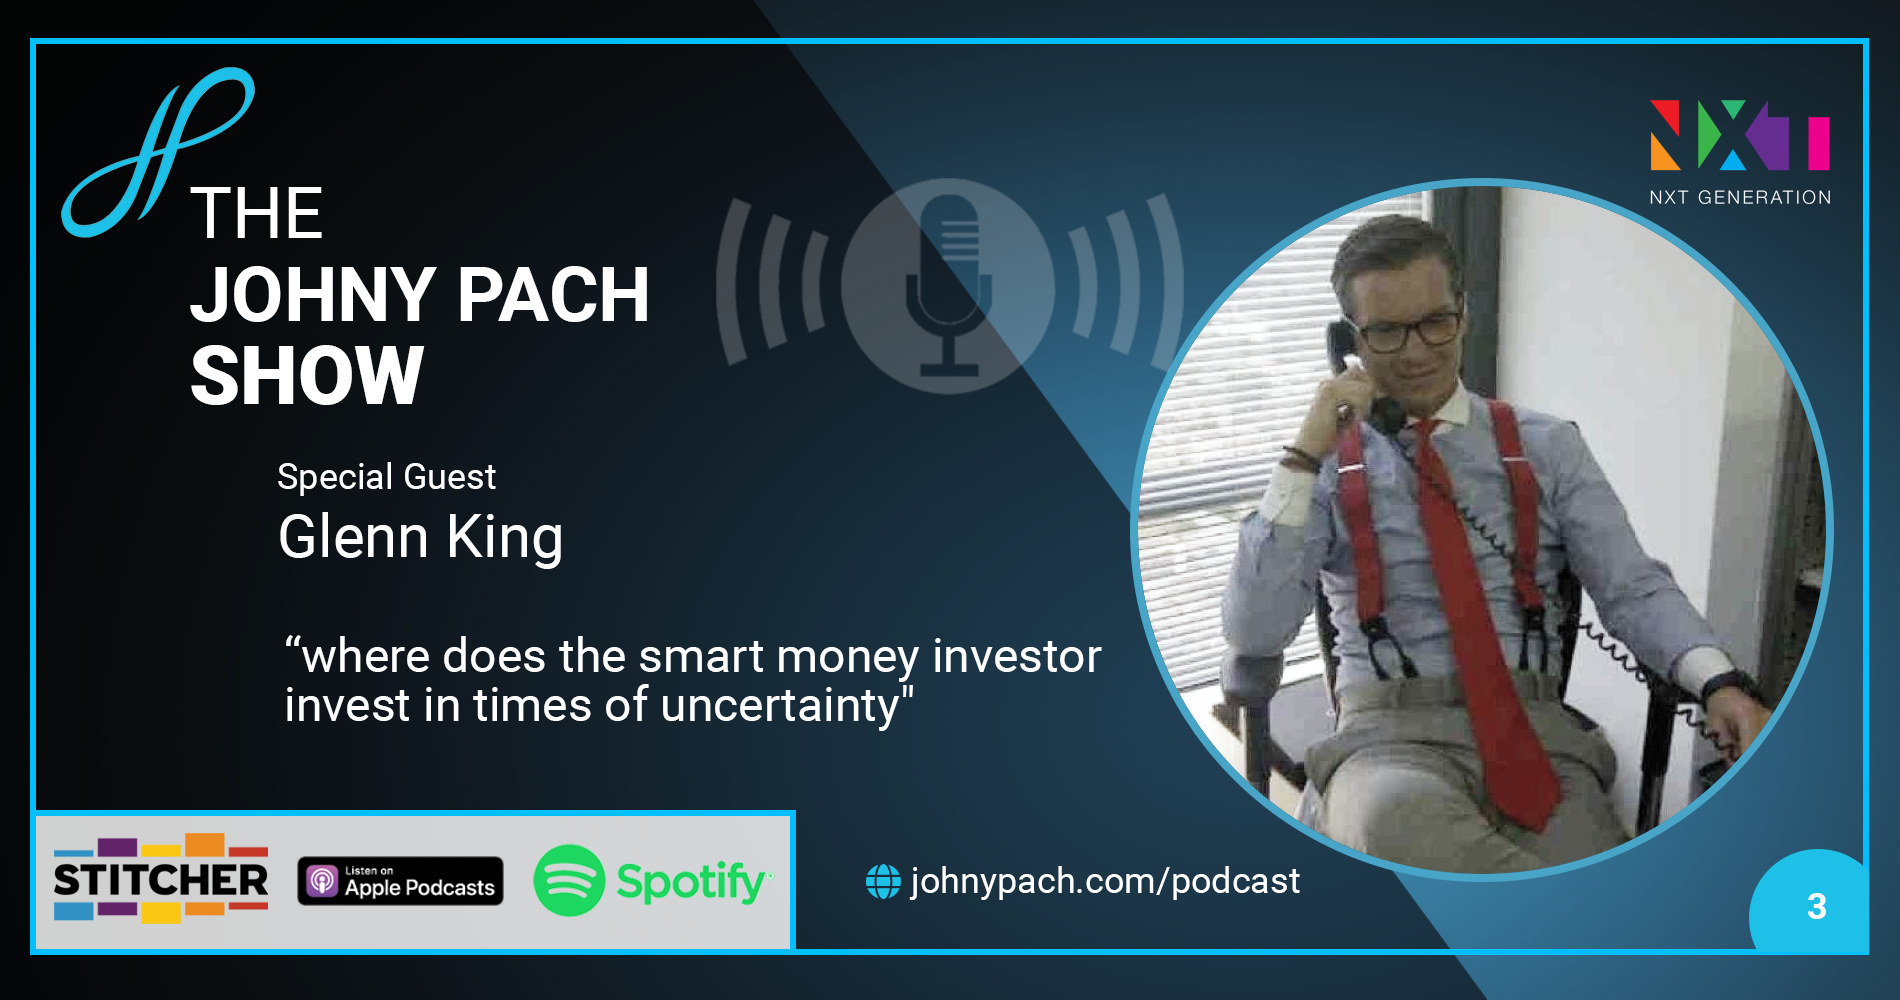 //johnypach.com/wp-content/uploads/2020/06/Podcast-Glen-king-ep3-1900x1000-1.png